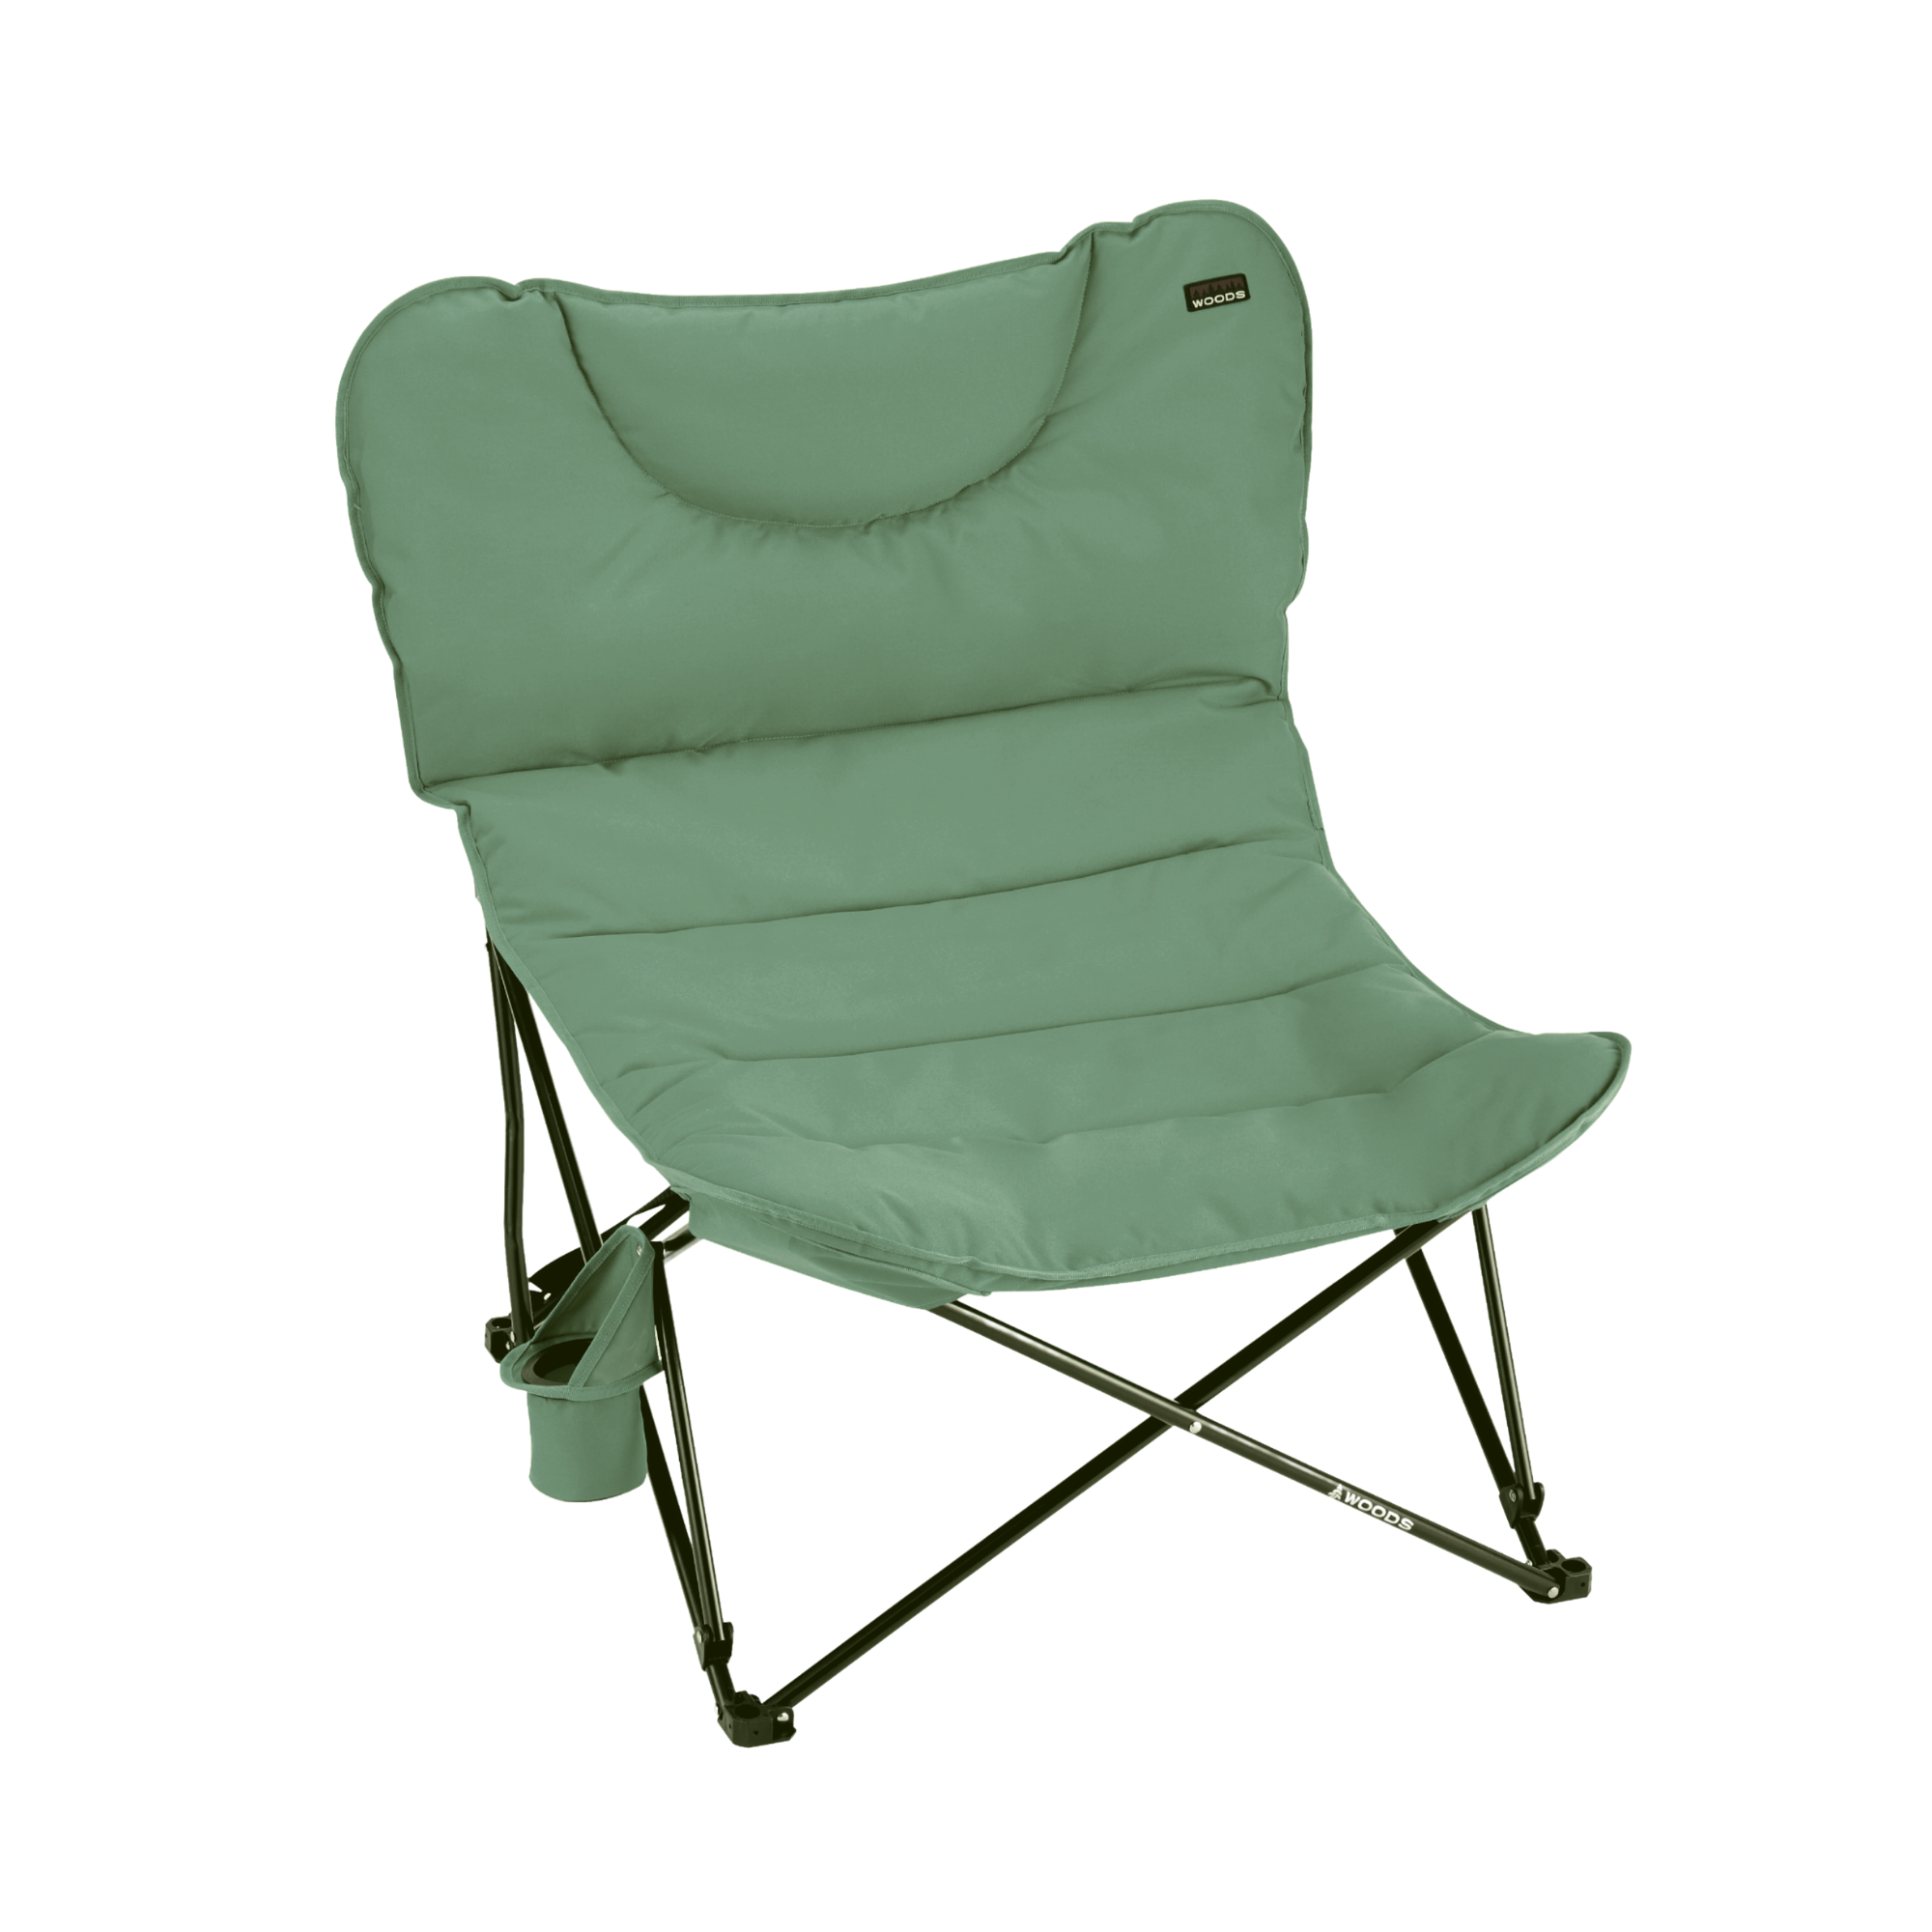 Best Beach Chairs For Outdoor Summer Activities 2020